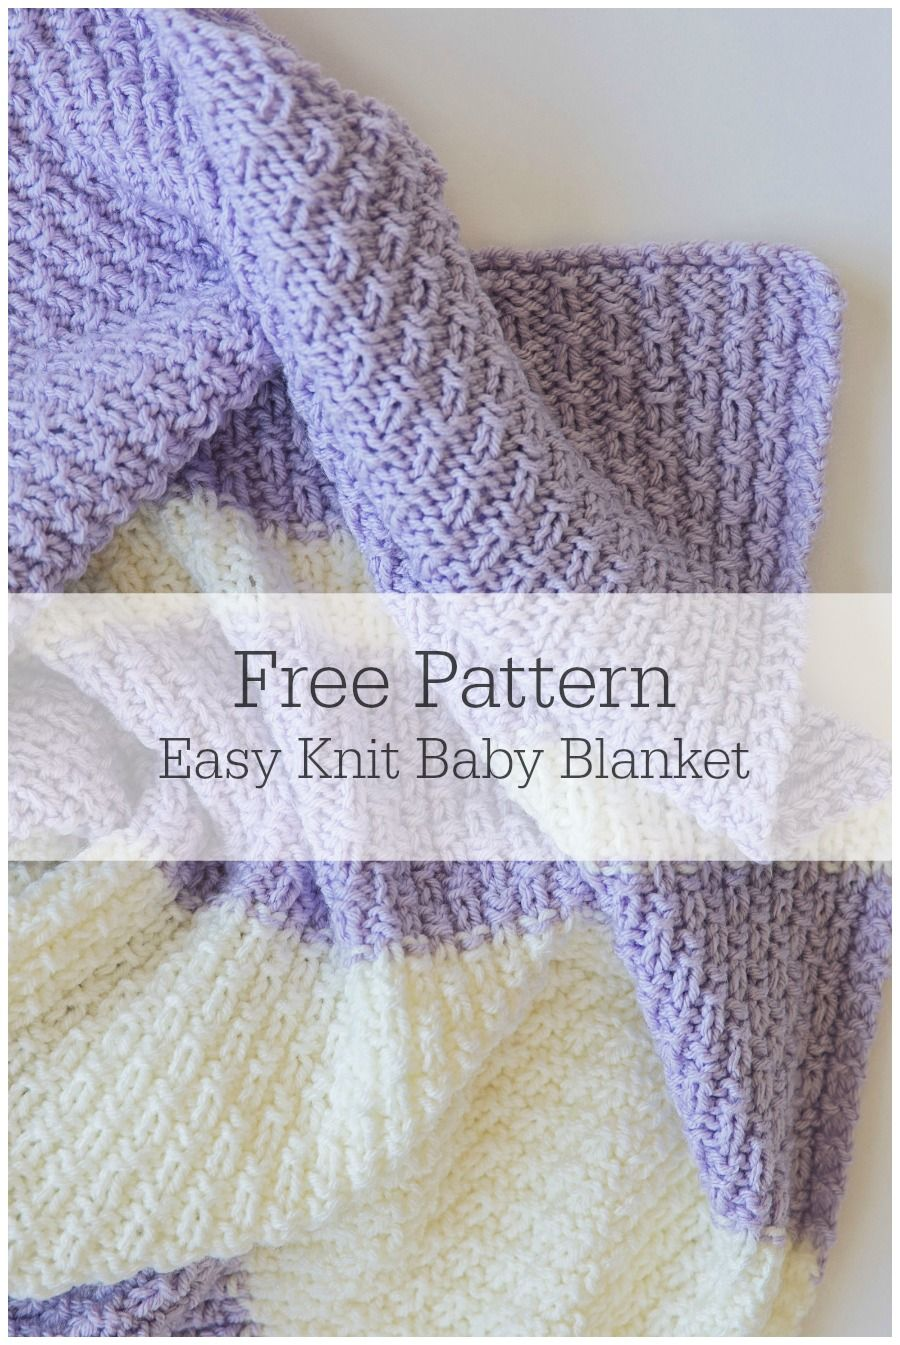 Easy Knit Baby Blanket Pattern | Knit | Pinterest | Easy knit baby ...